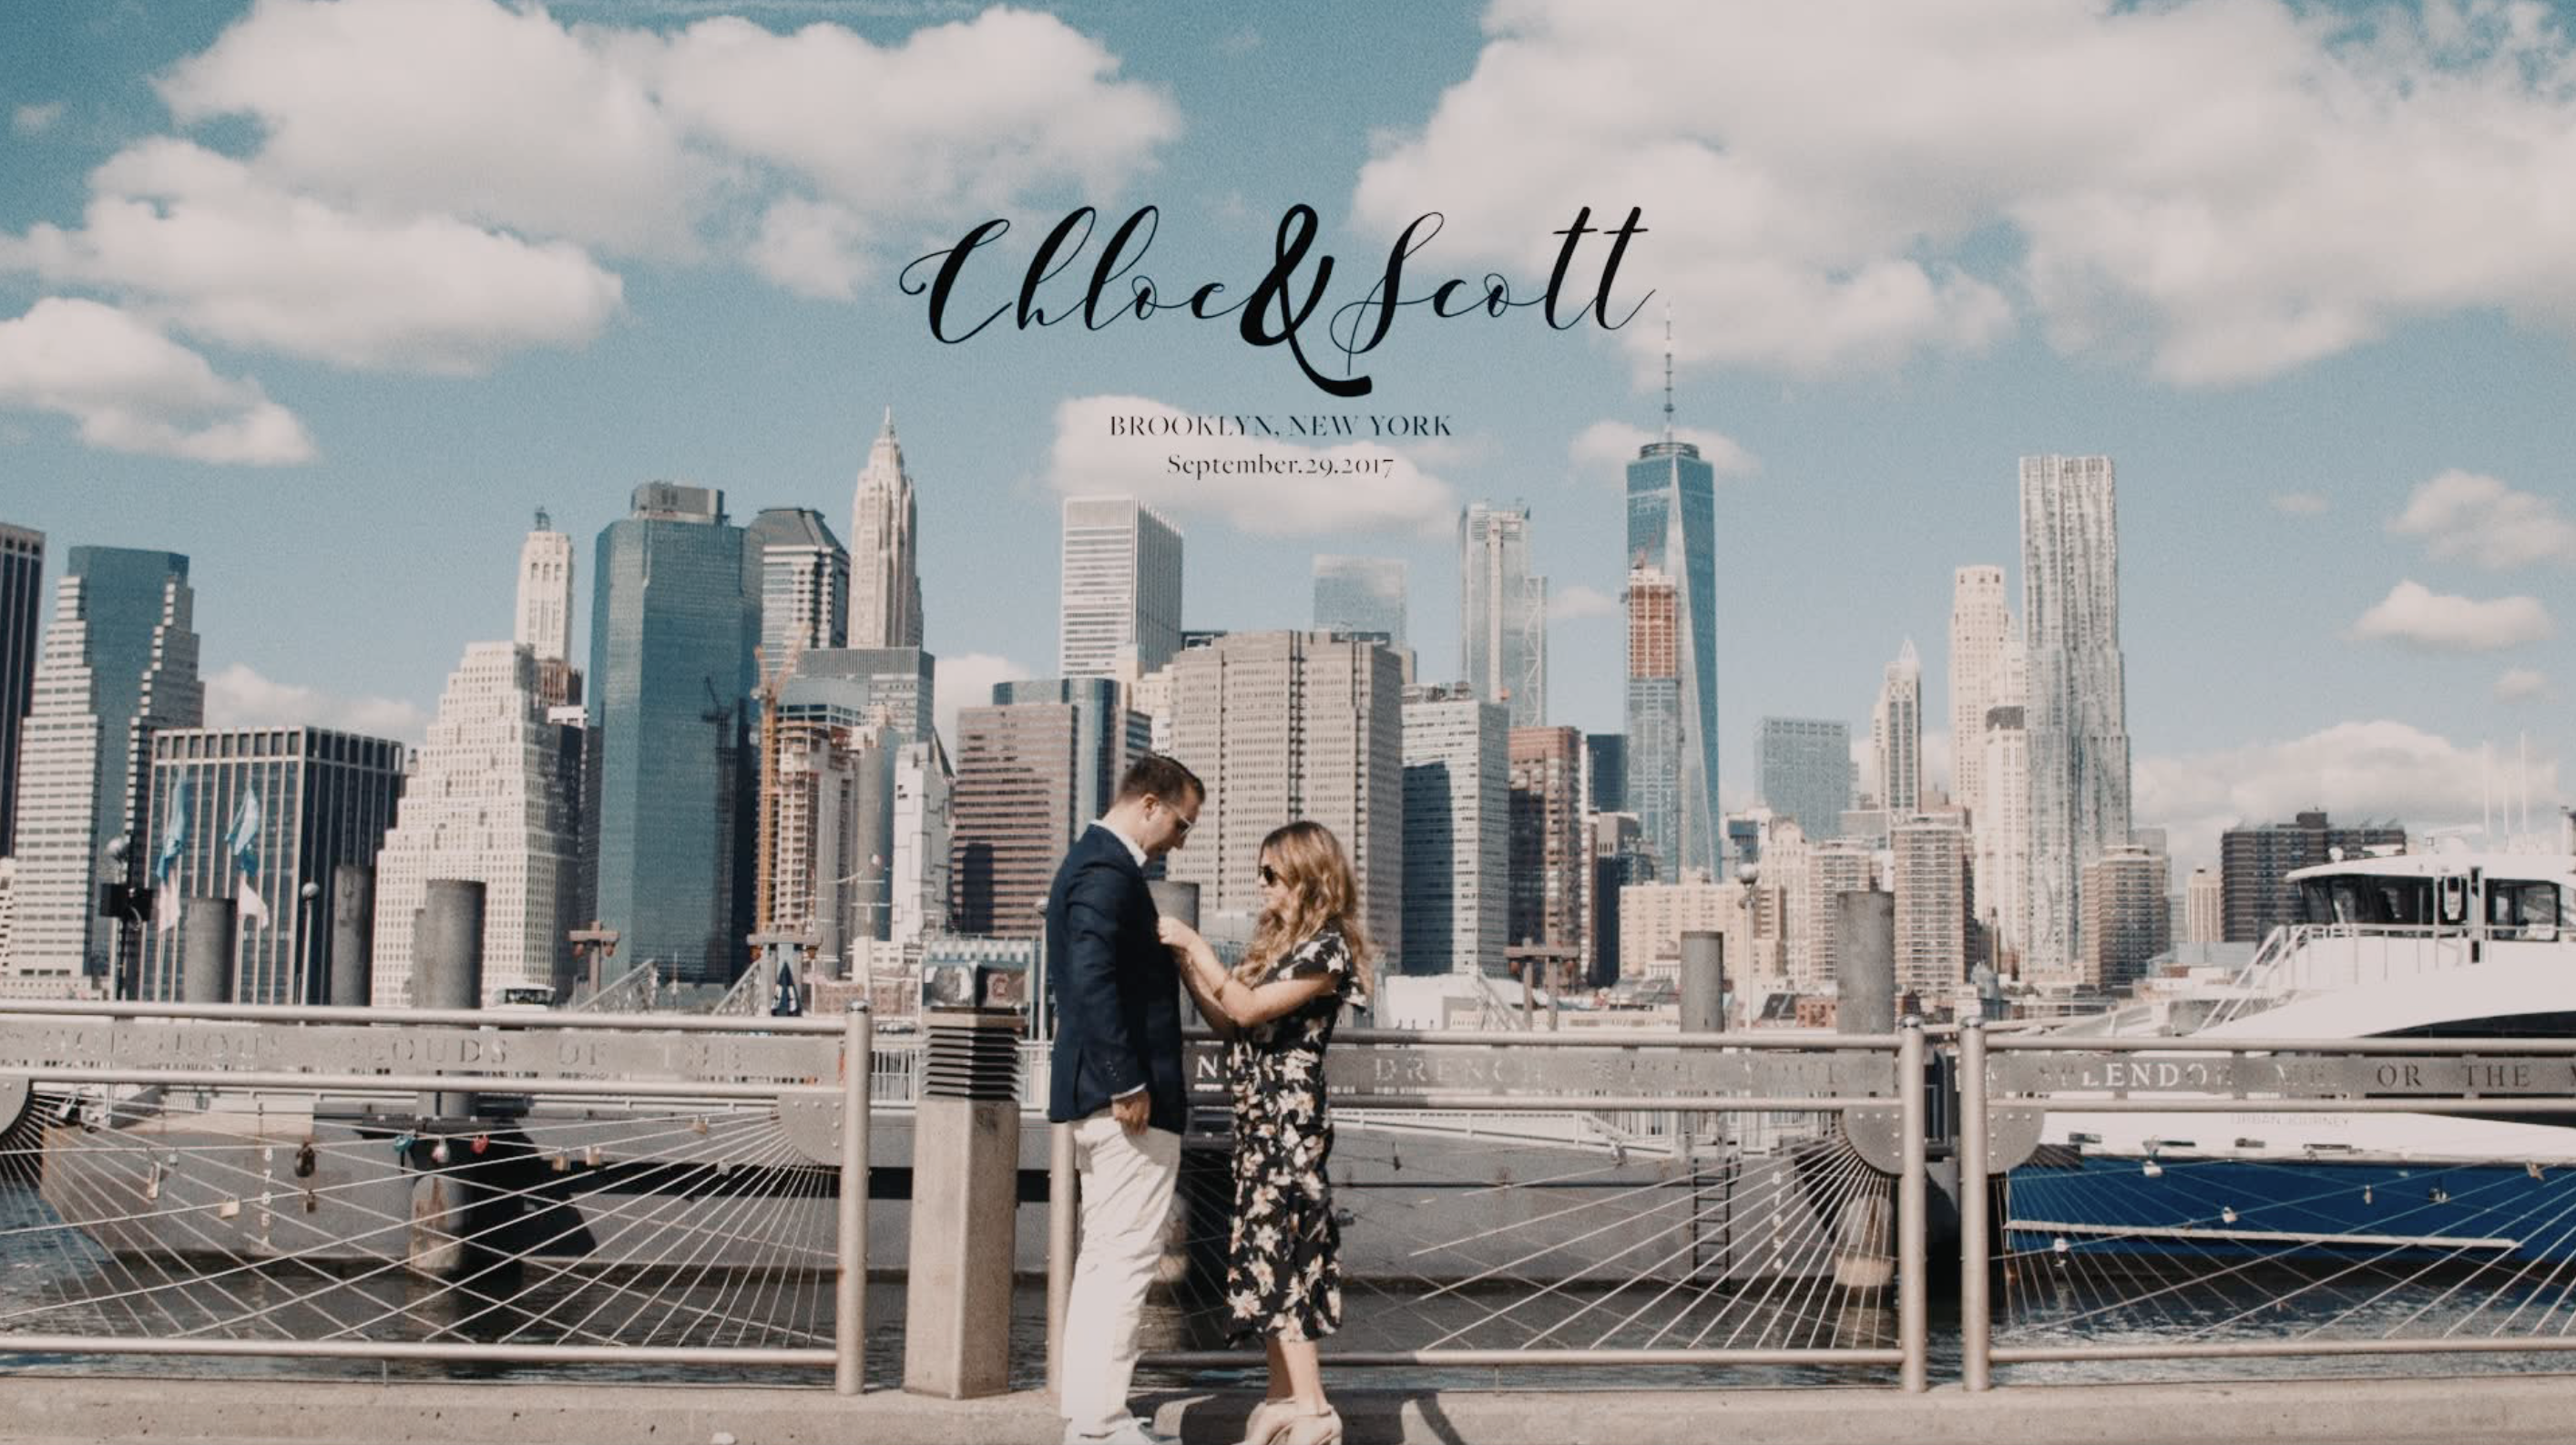 Chloe + Scott | Brooklyn, New York | Brooklyn Bridge